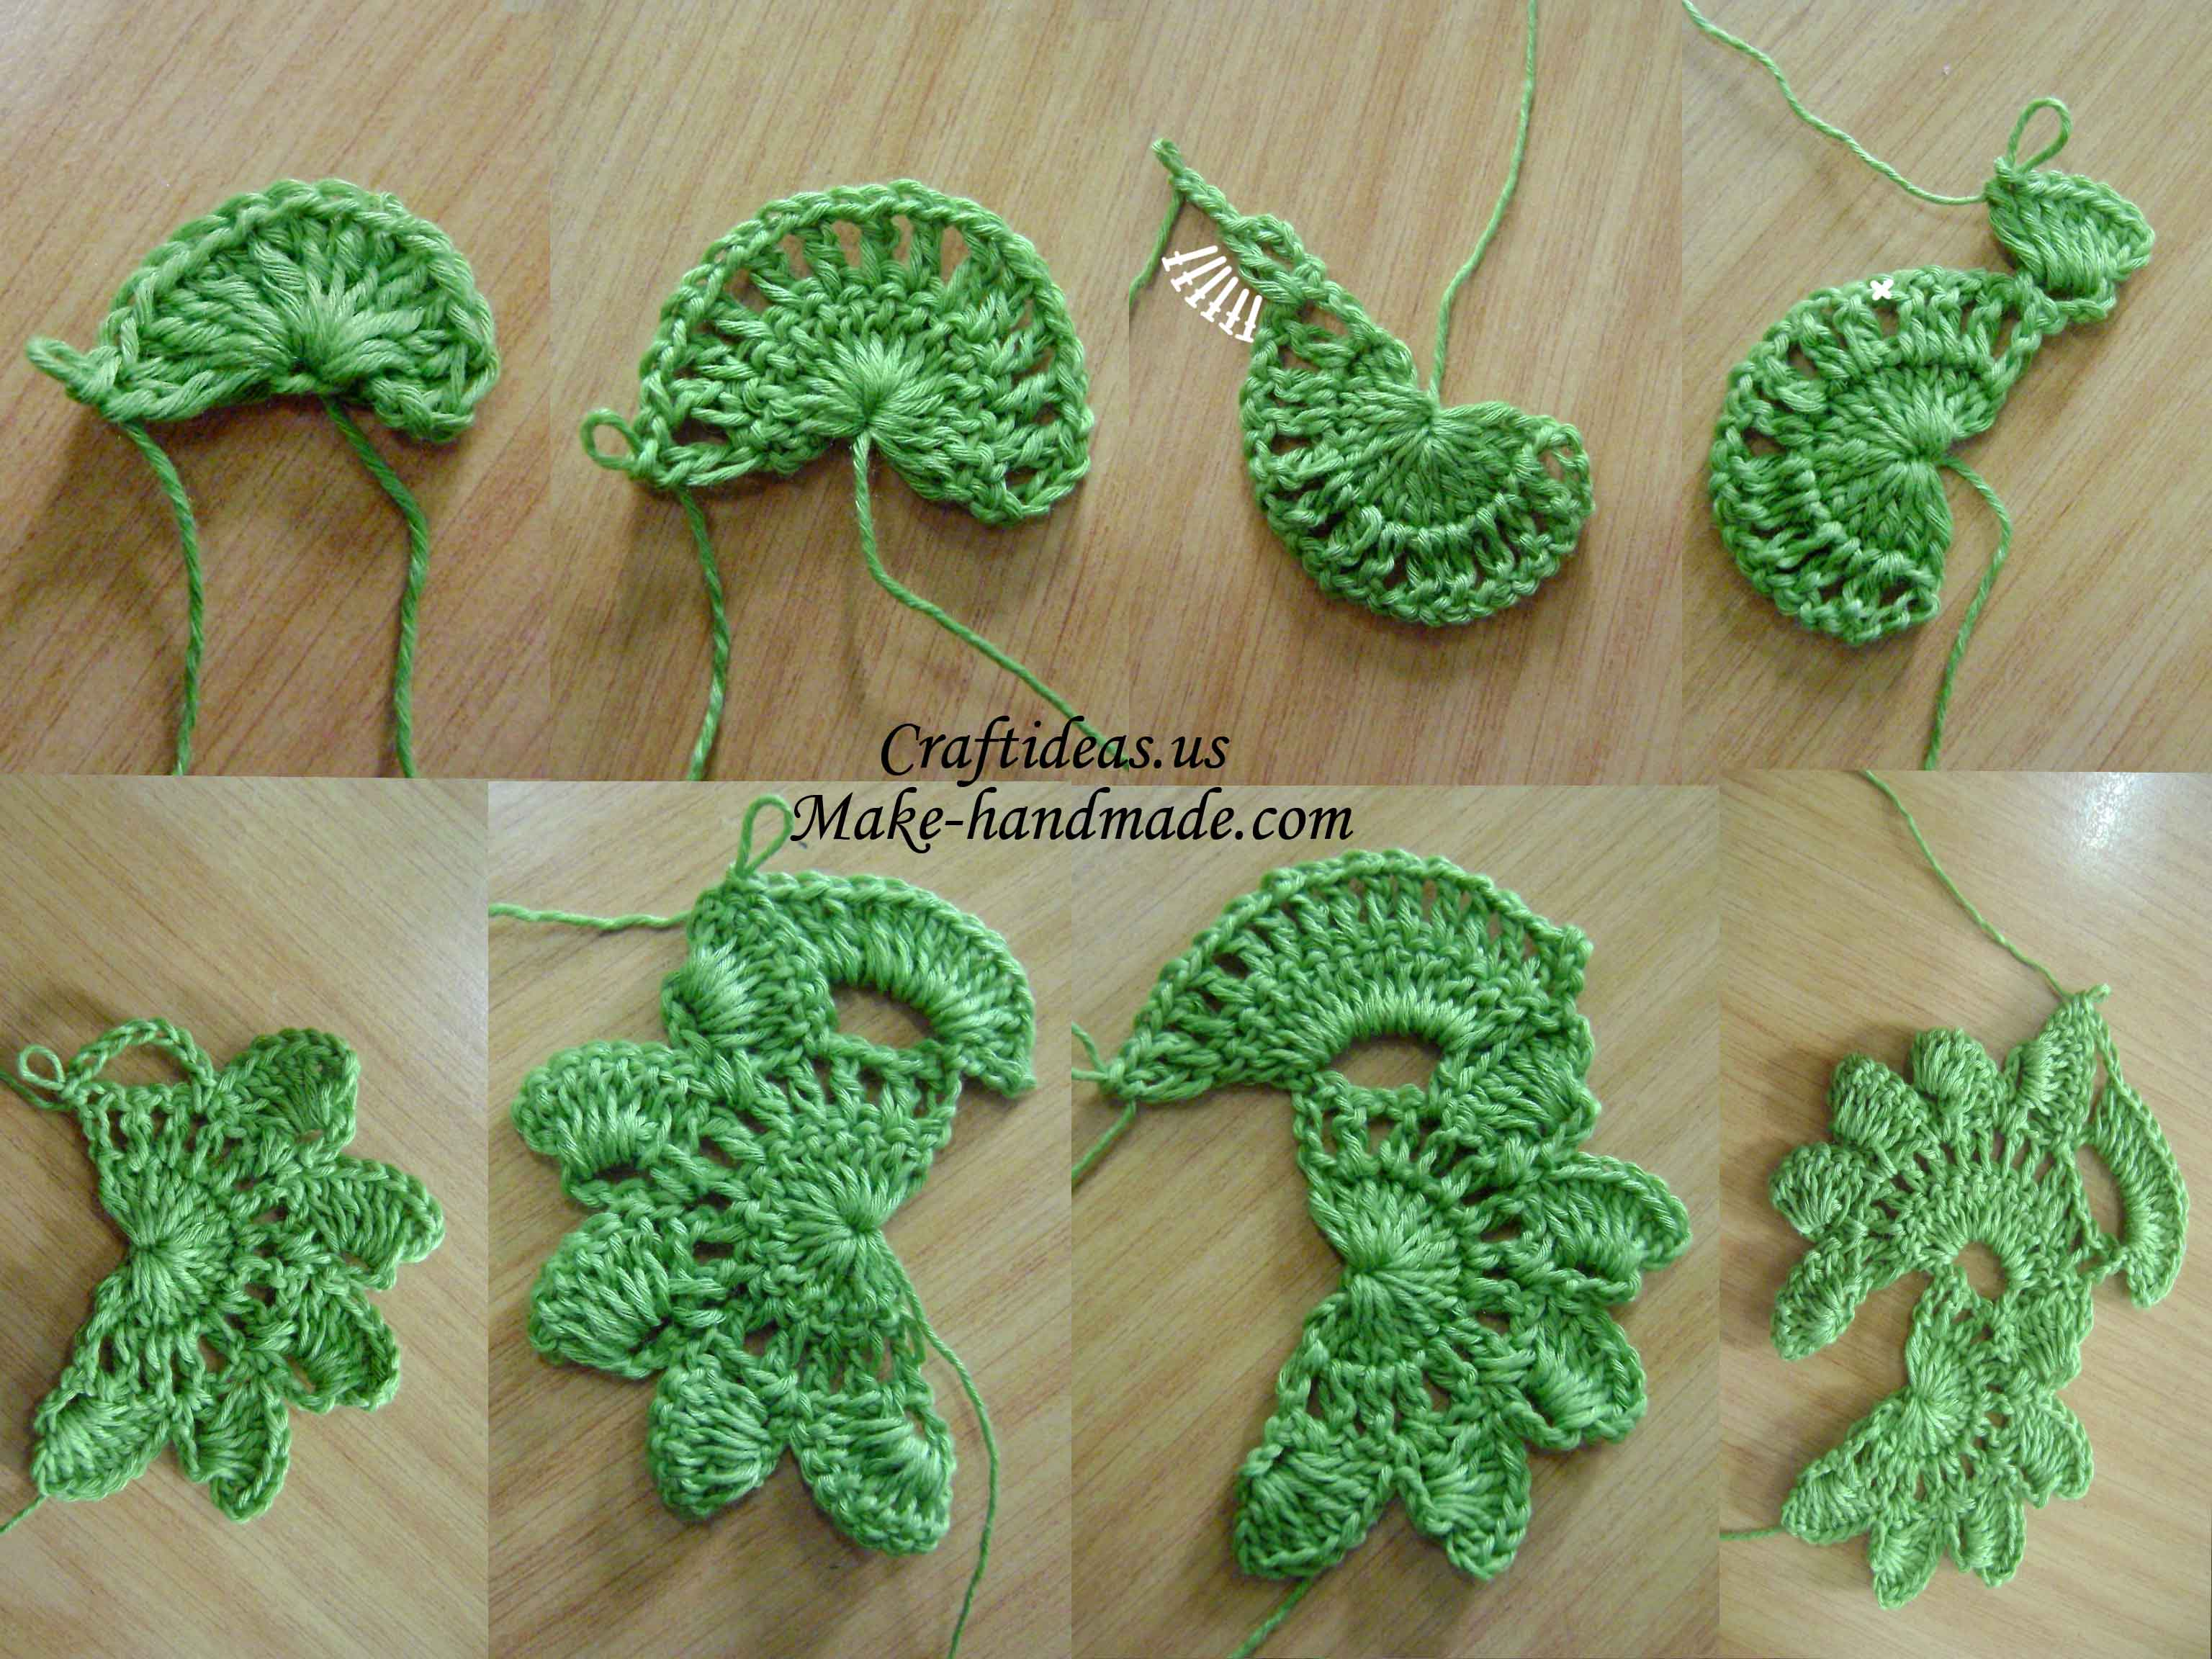 Crochet Patterns And Tutorials : ... pattern is called or where I can find a tutorial. Thanks! : crochet